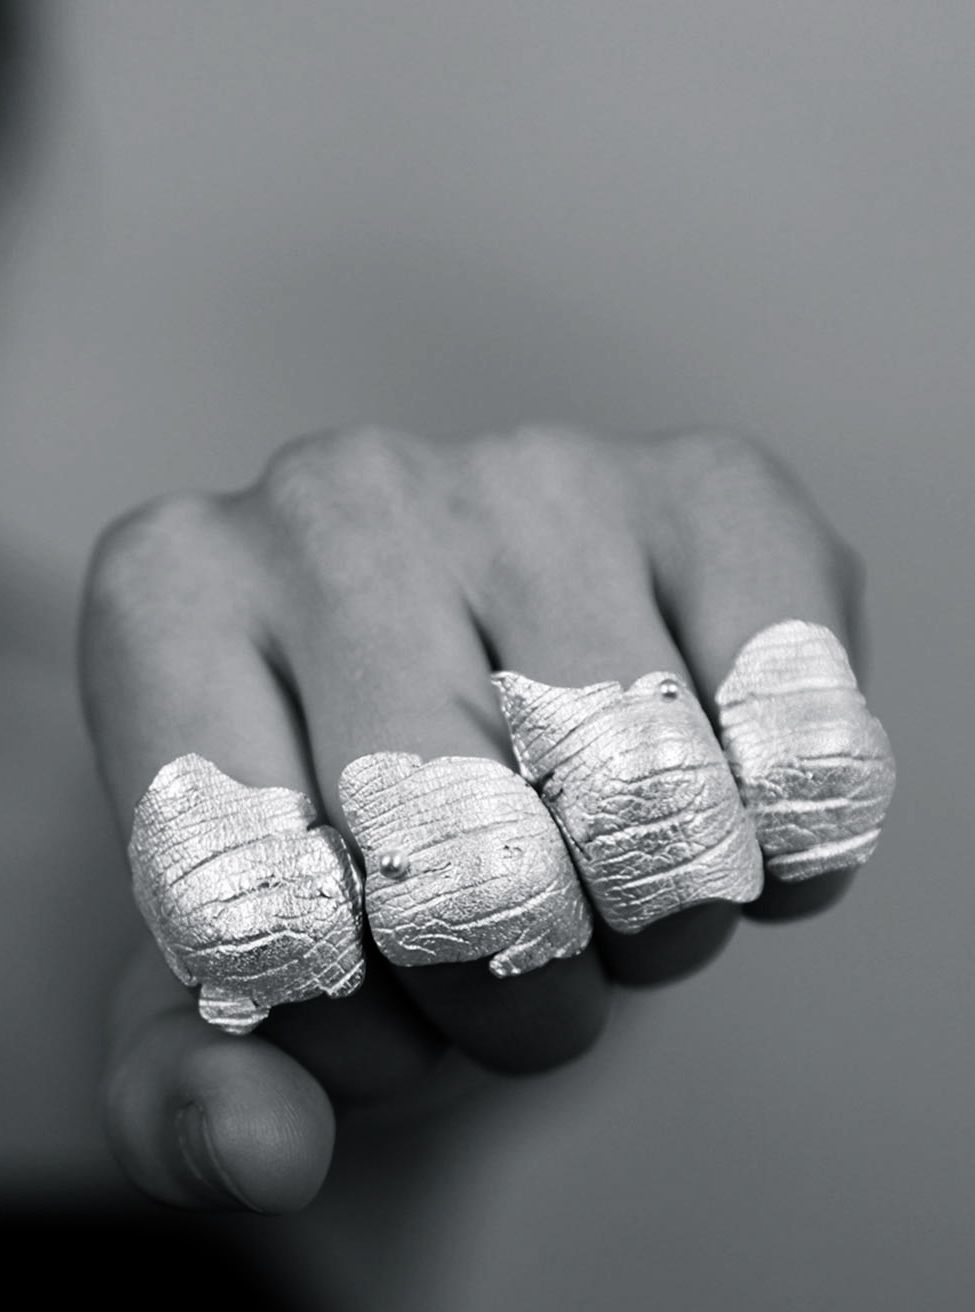 Silver | 銀 | Plata | Gin | Argento | Cеребро | Argent | Metal | Chrome | Metallic | Colour | Texture | Pattern | Style | Design | Composition | Photography | Hillarey Dees | Loved Ones Knuckles